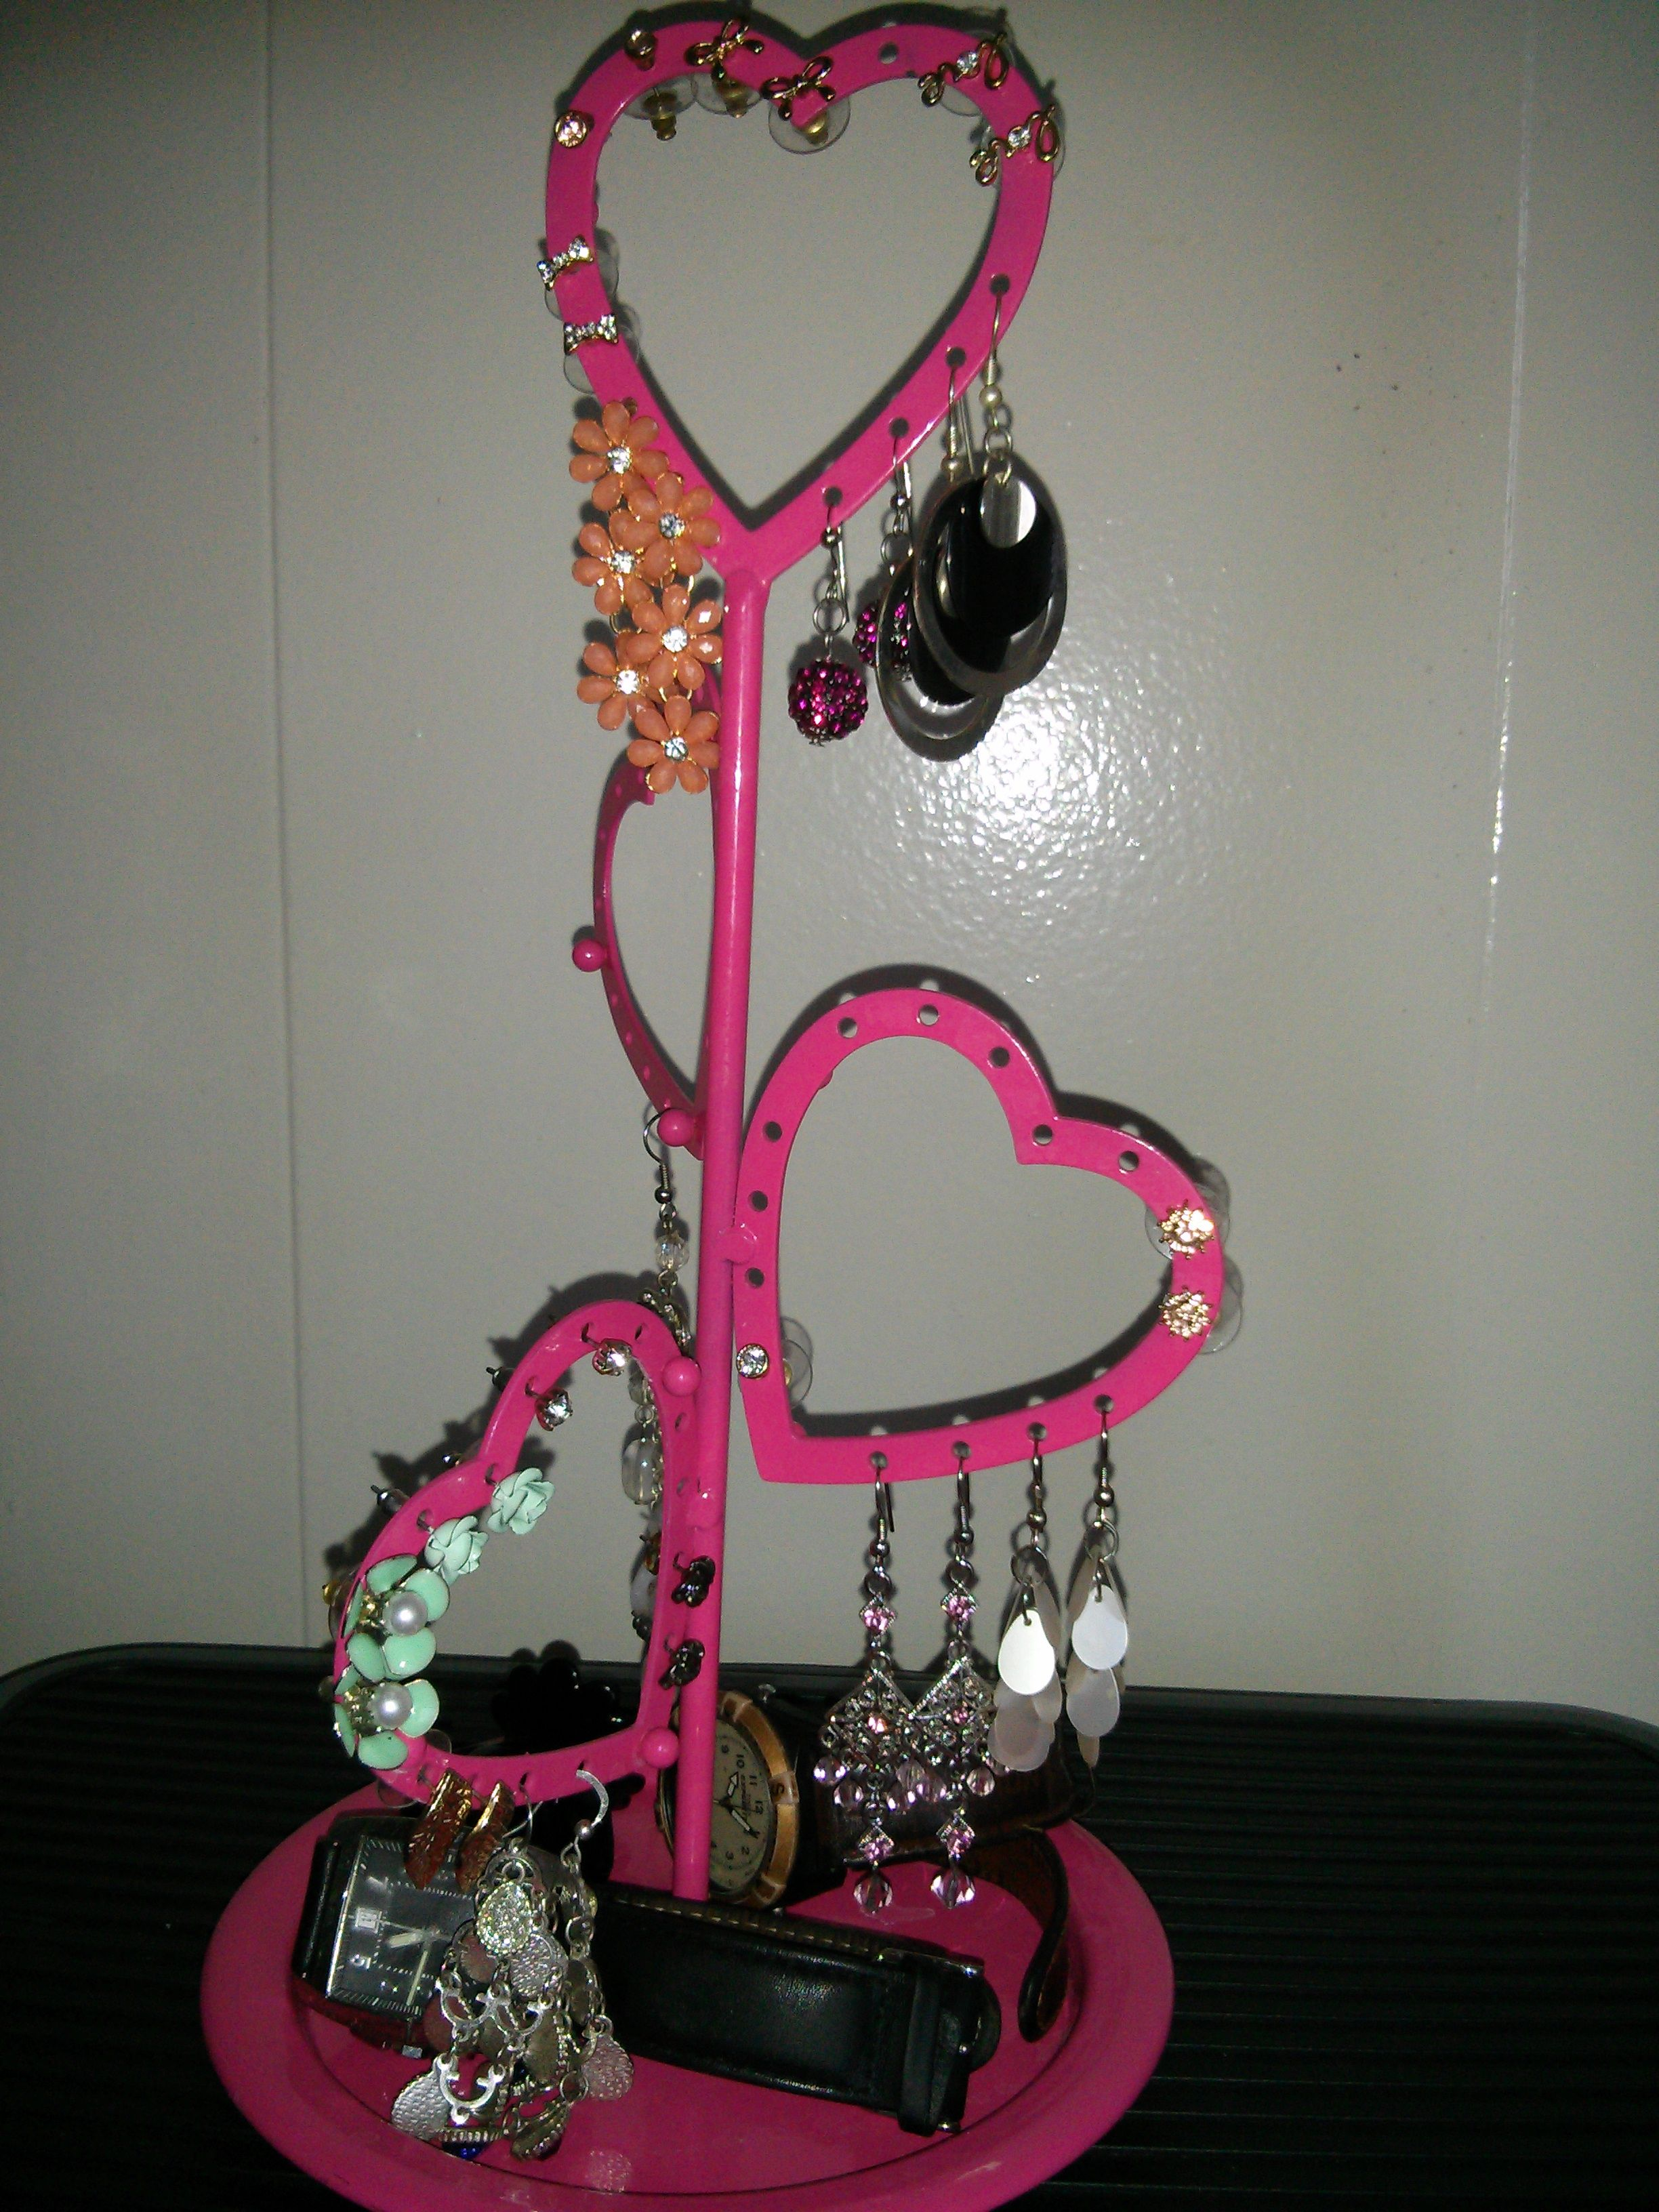 A local thrift store find for $3 USD...earring hanger adds extra charm to dressing table